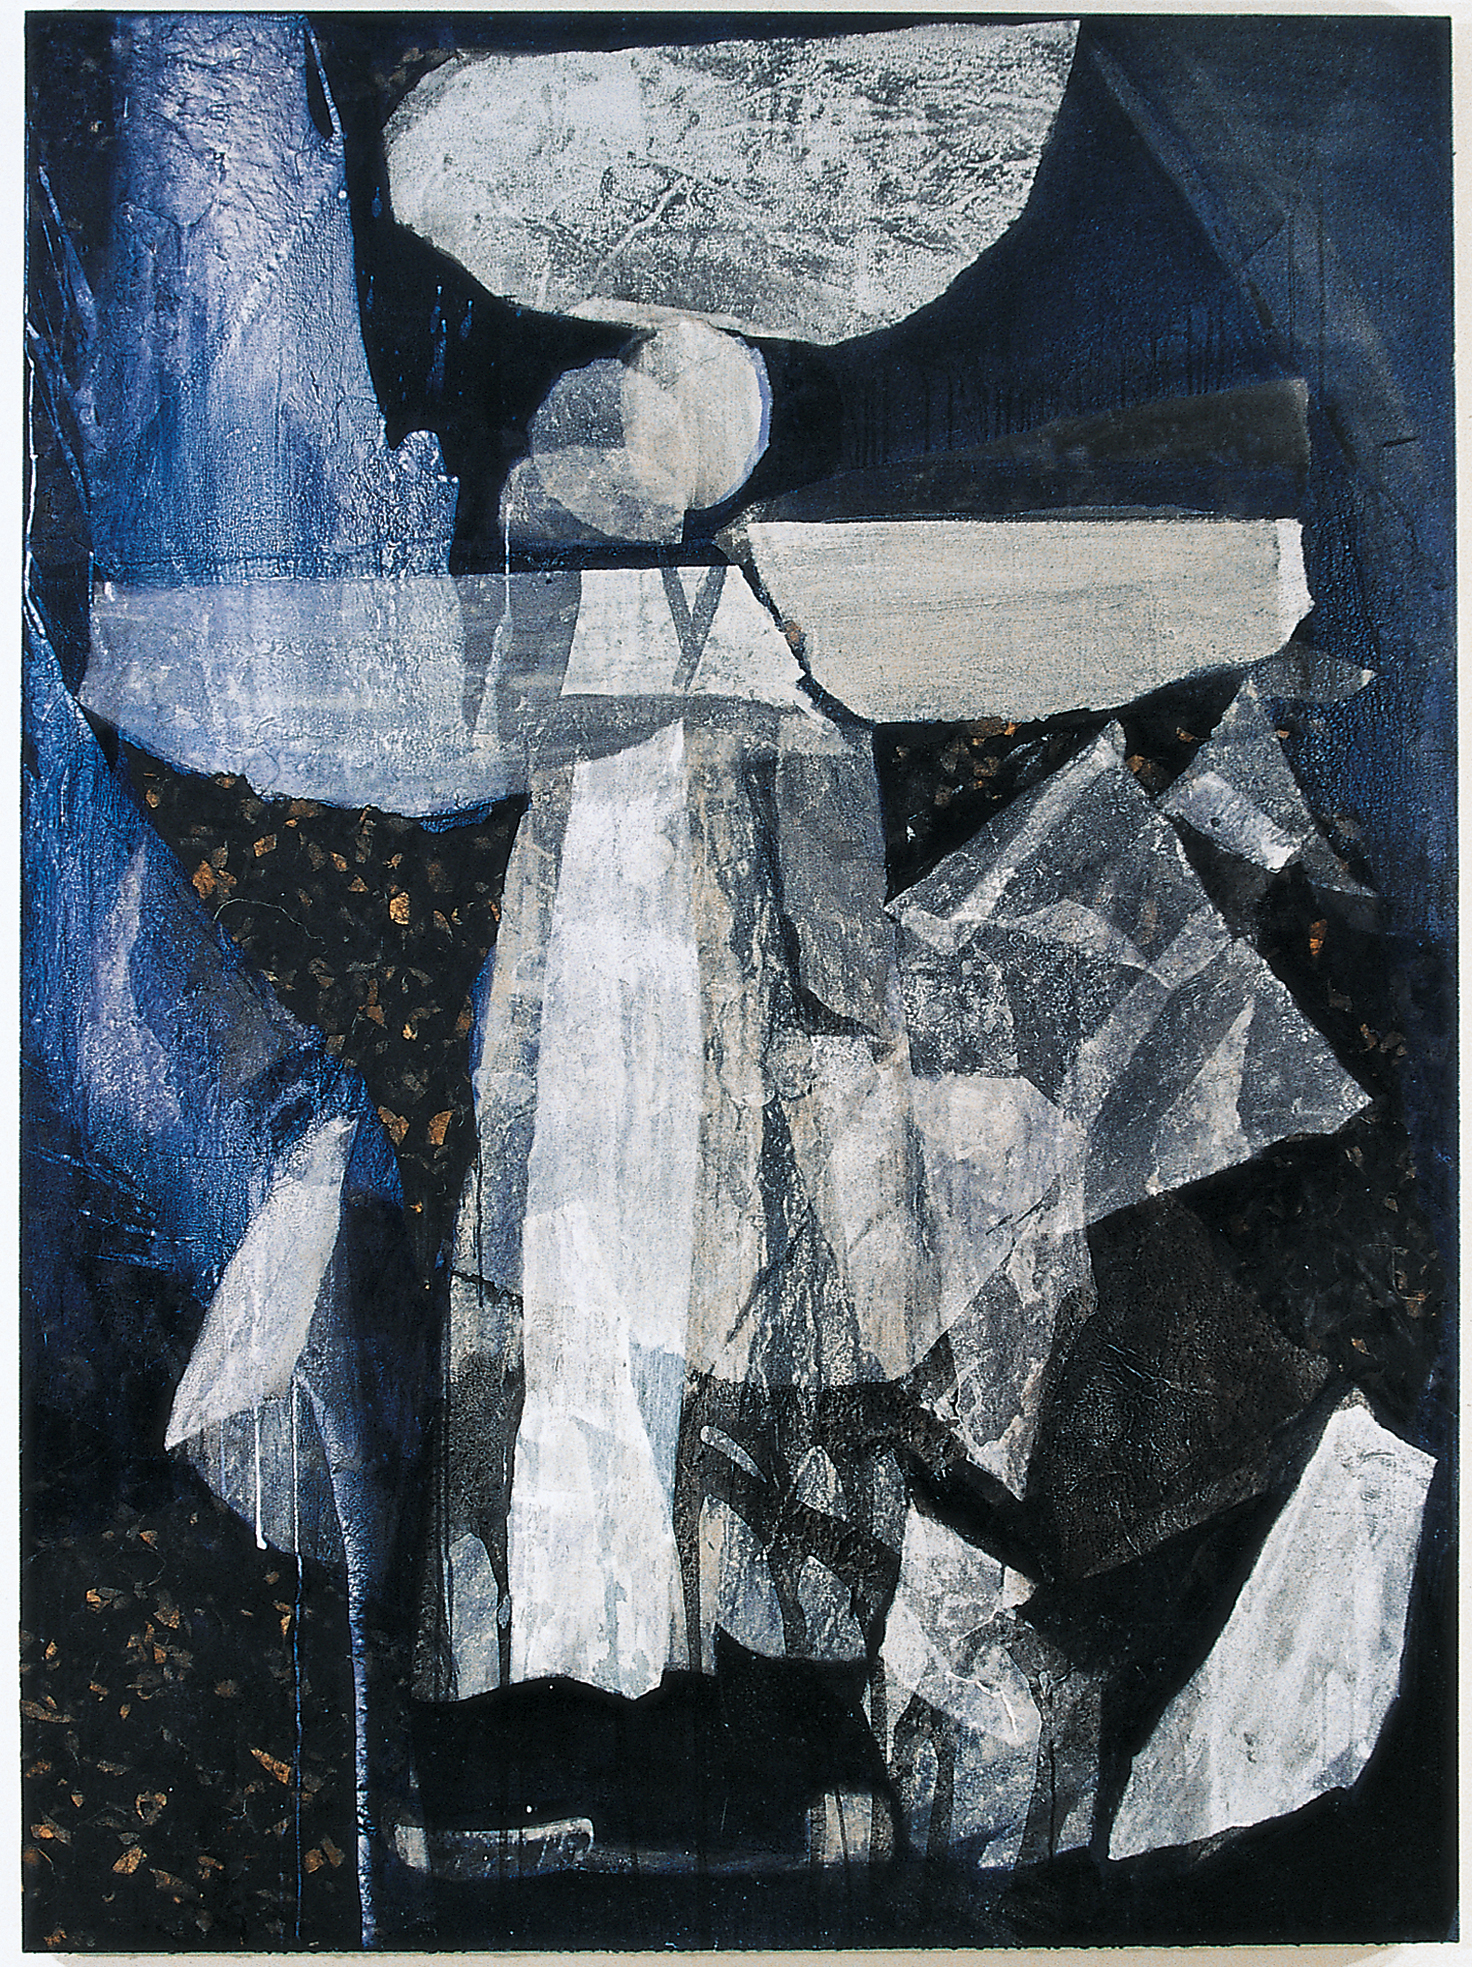 SoHyun Bae, Wrapped Shards: Egg Woman II, 2003, rice-paper and pure pigment on canvas, 81 x 60 inches